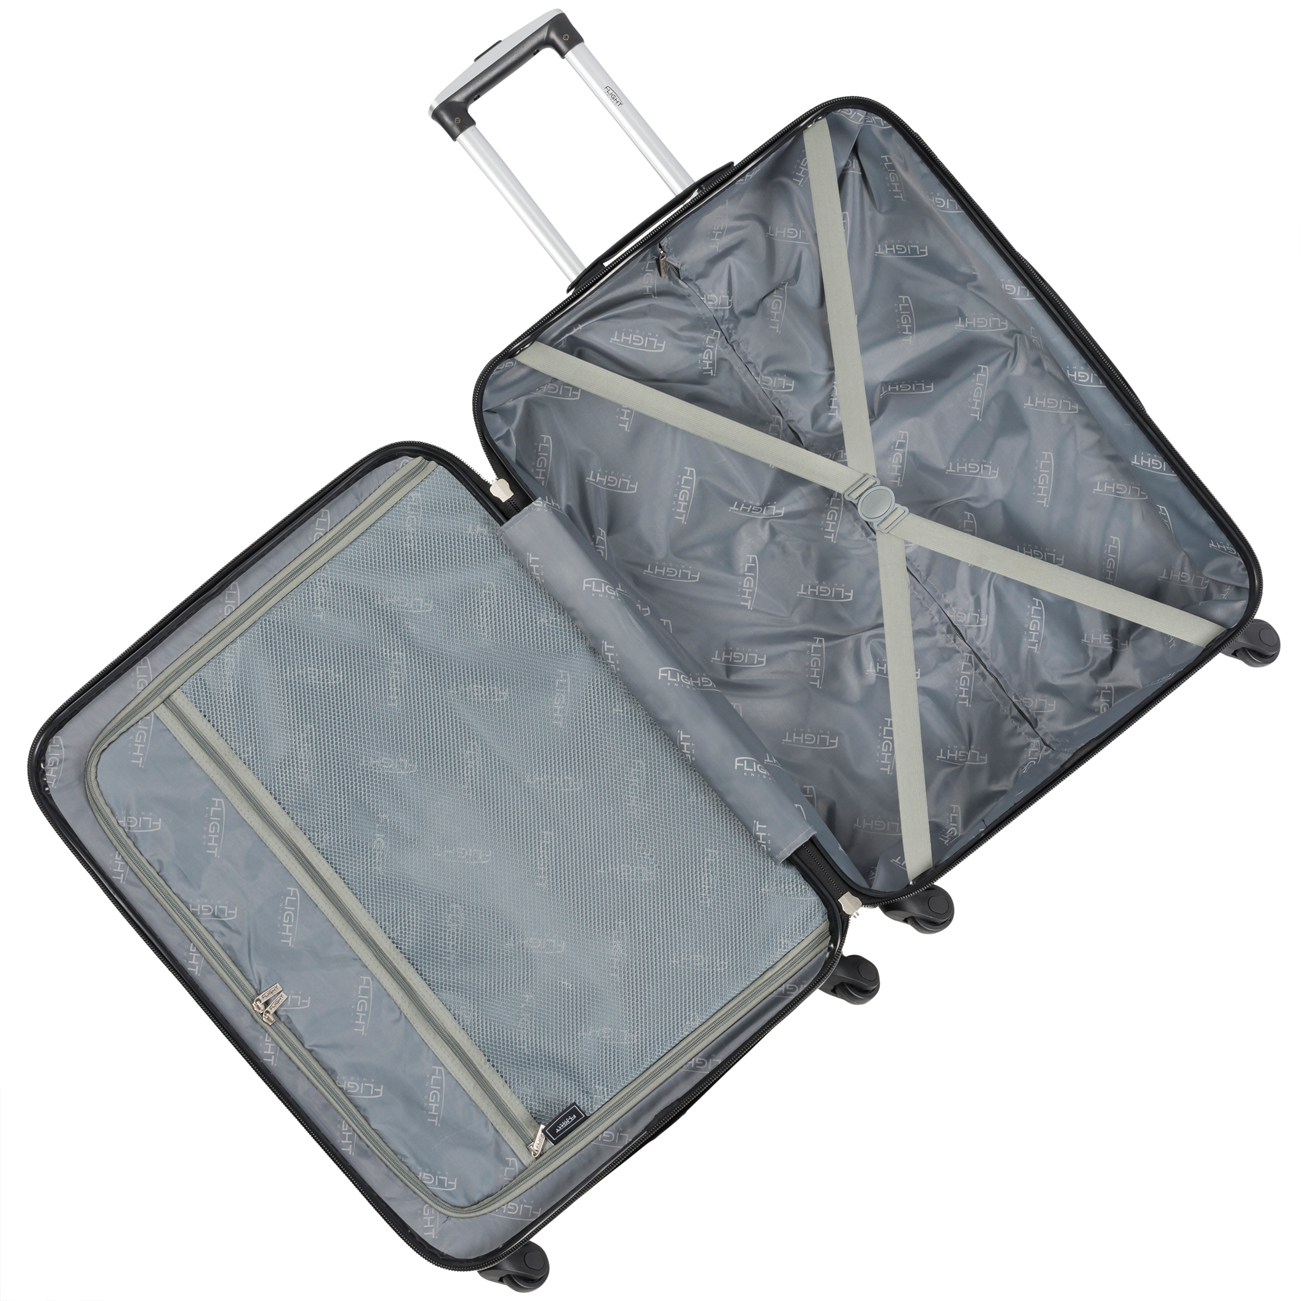 Details about Lightweight Hard Case Cabin Carry On Suitcase Bag Sets Max  Size Virgin Atlantic